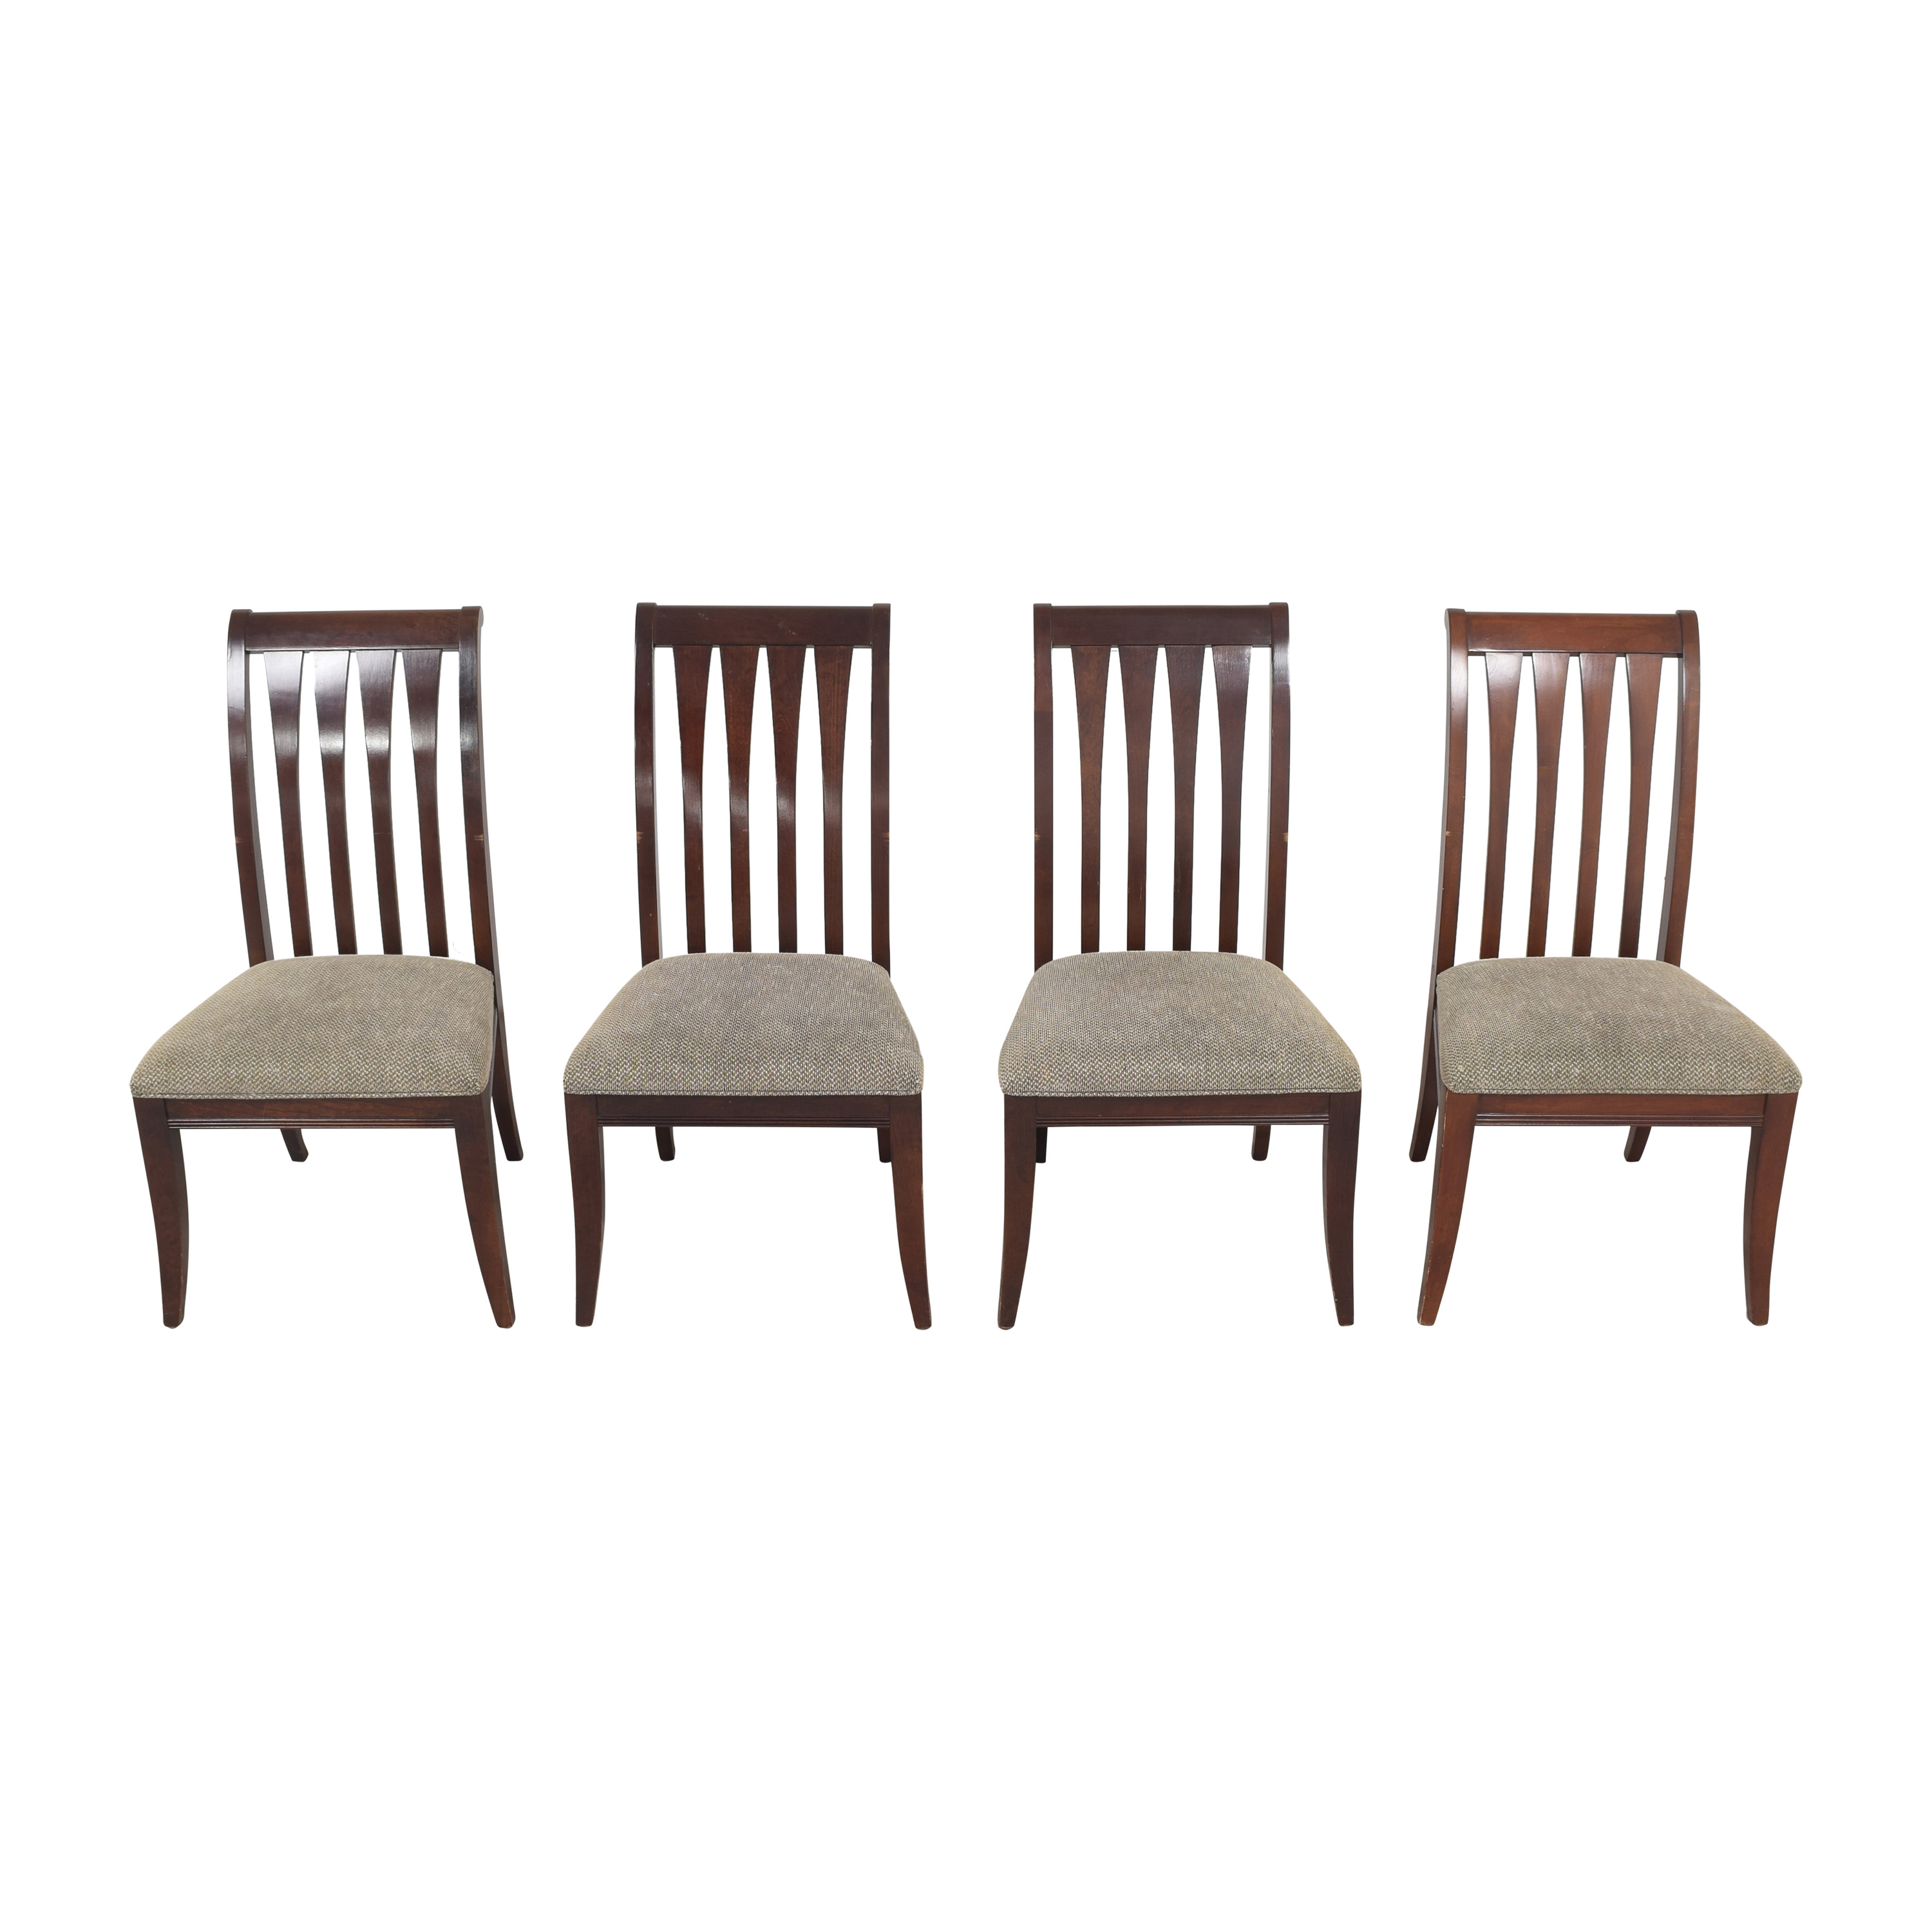 Ethan Allen Ethan Allen Avenue Collection Dining Chairs pa